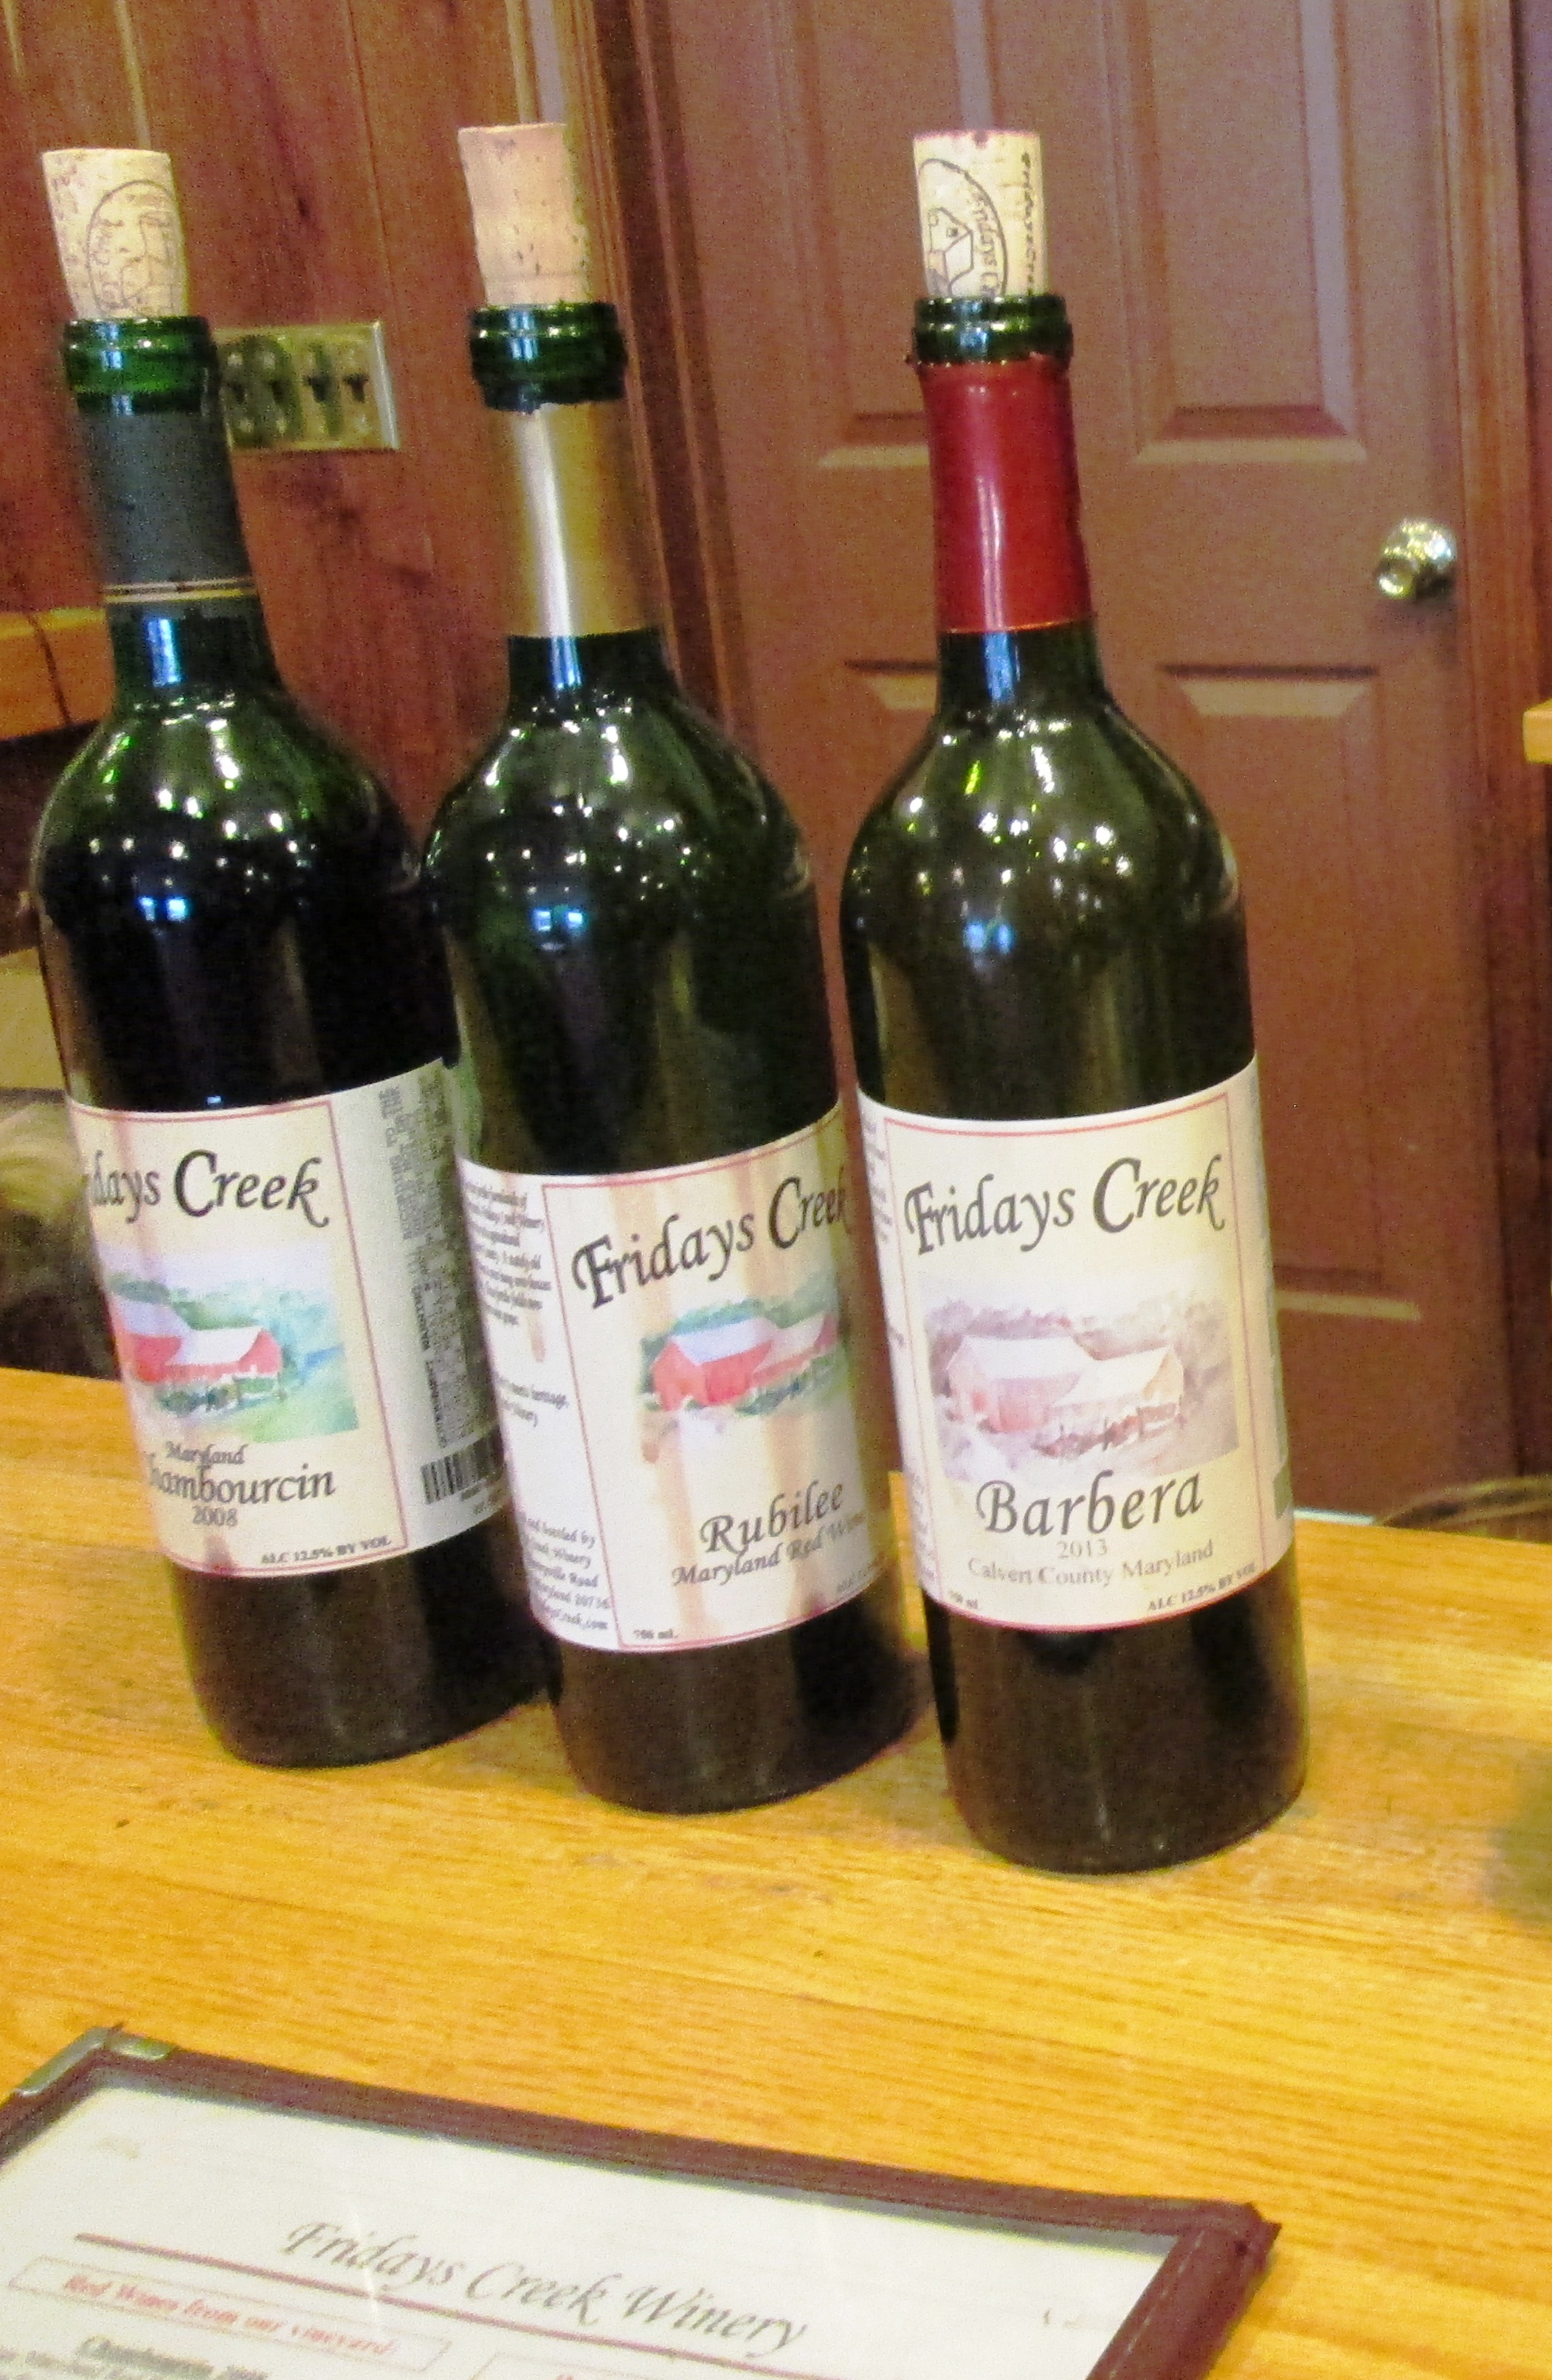 Friday's Creek wine selections.